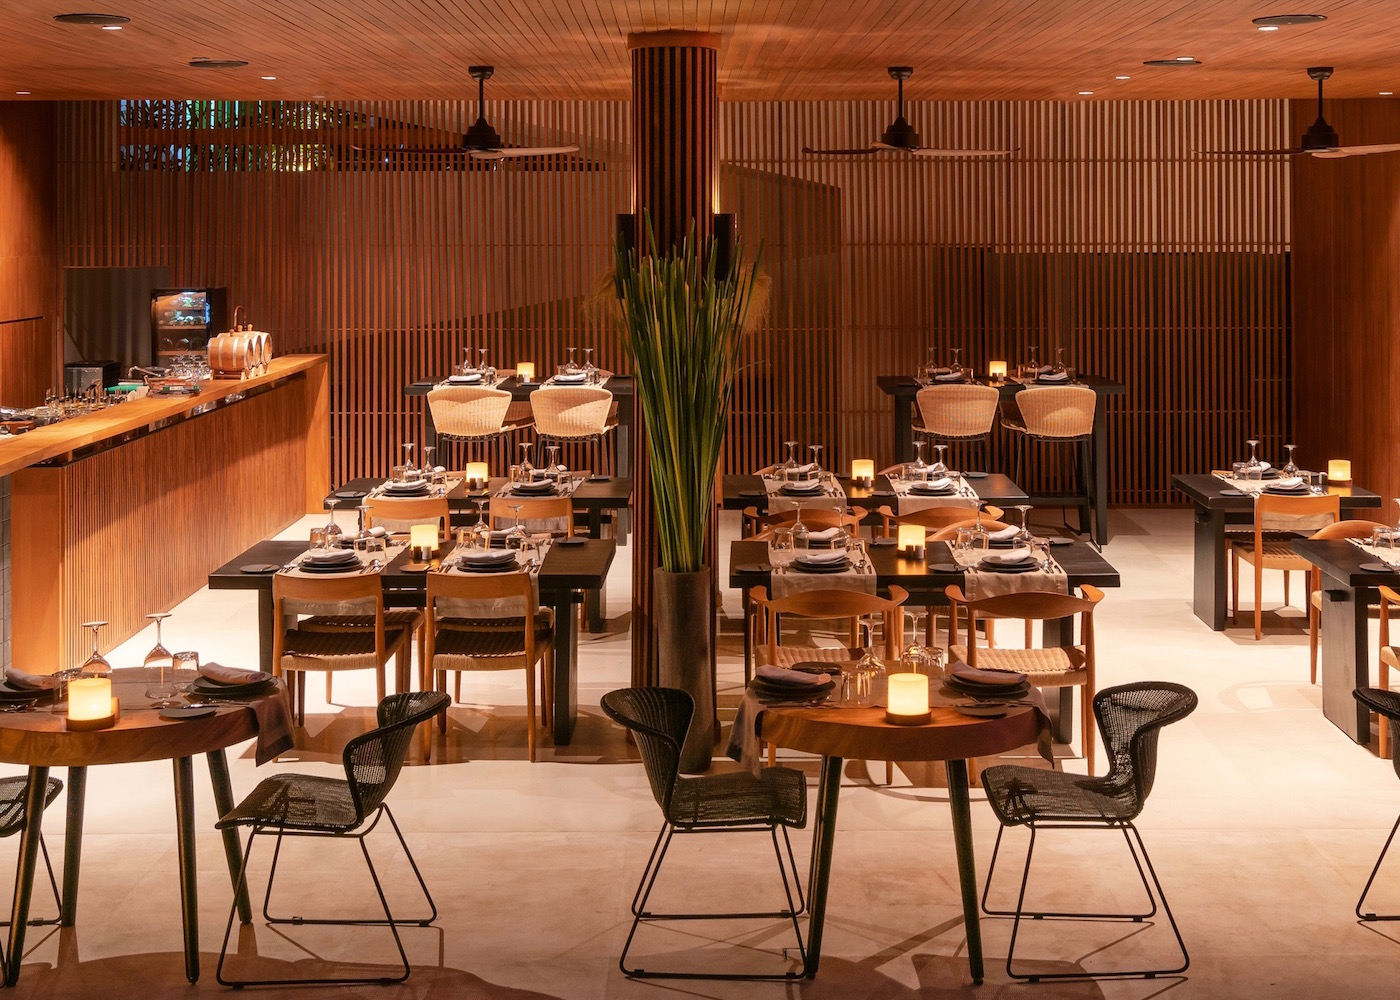 Embers is Ubud's brand new restaurant with Mediterranean flair at The Villas at Bisma Eight